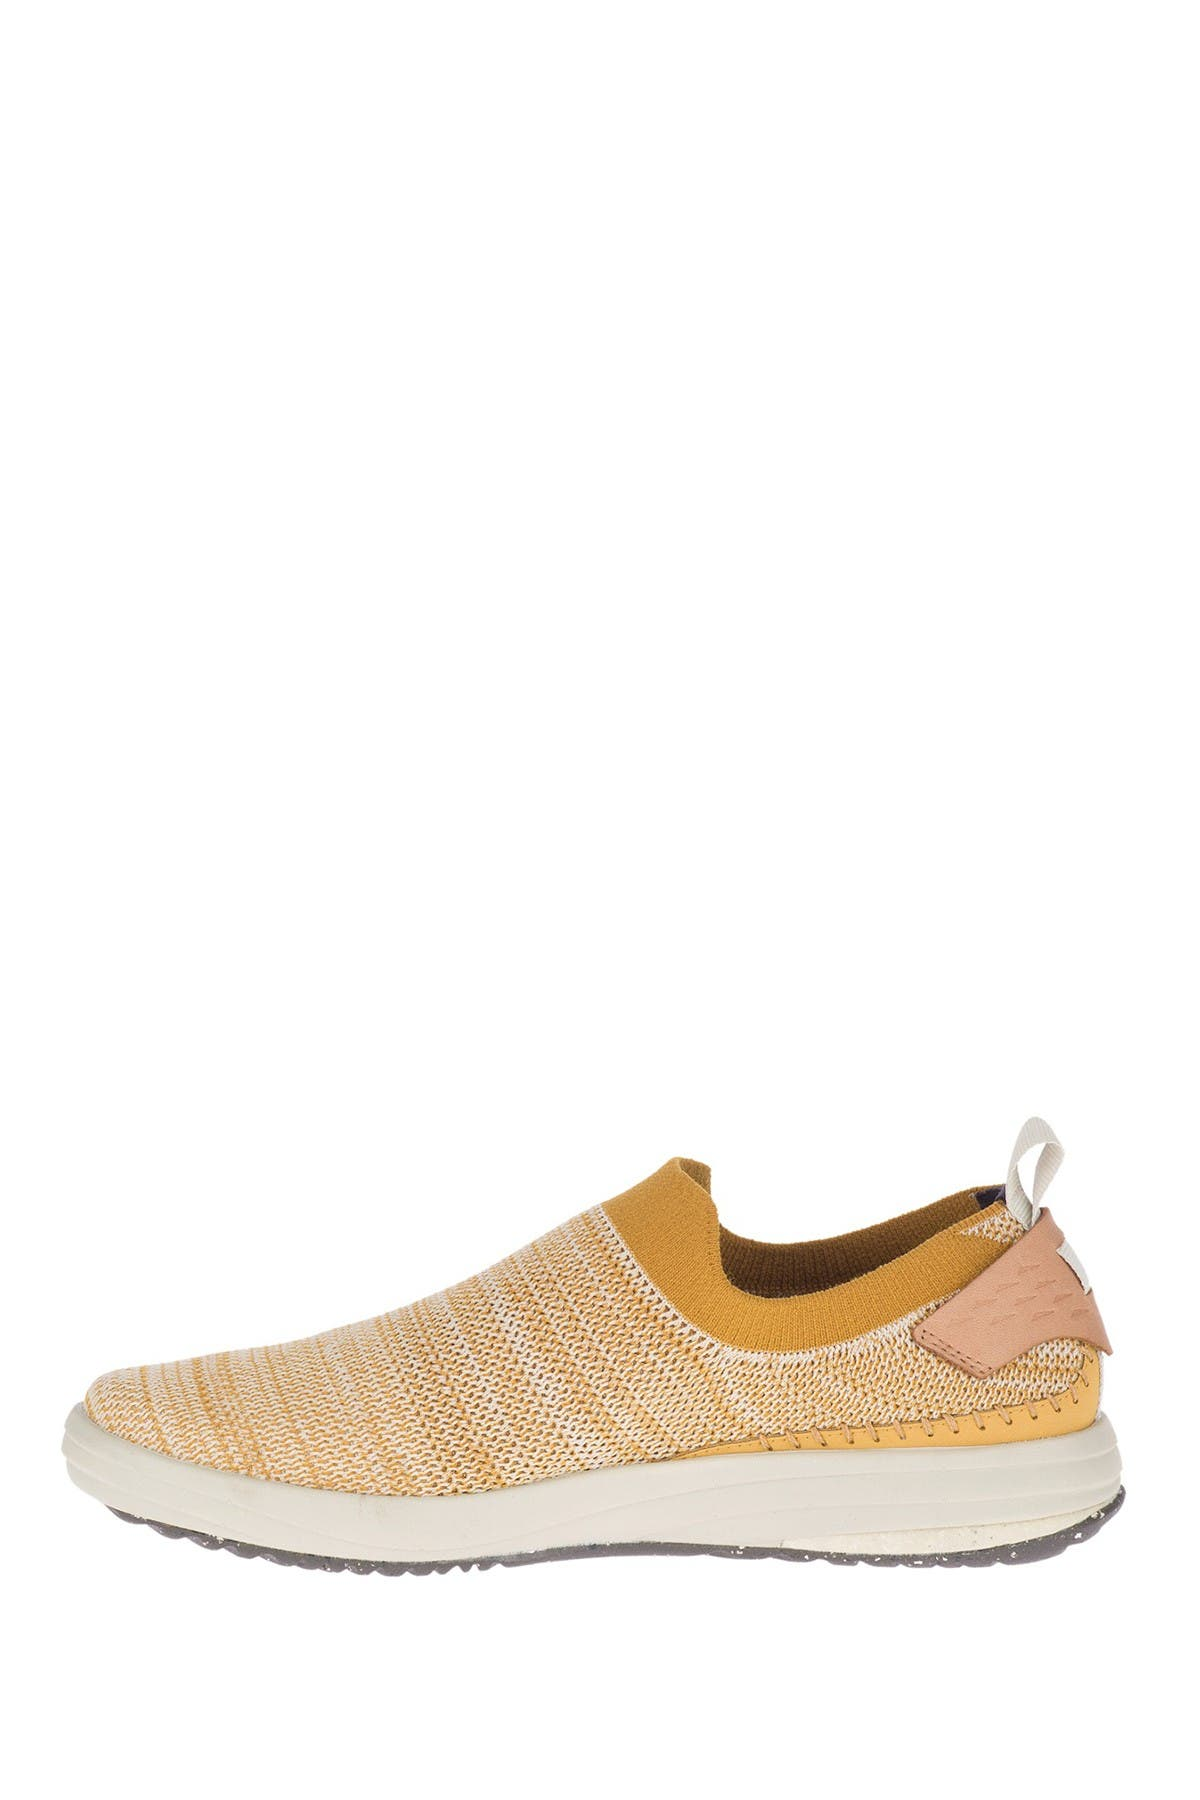 Image of Merrell Gridway Slip-On Sneaker